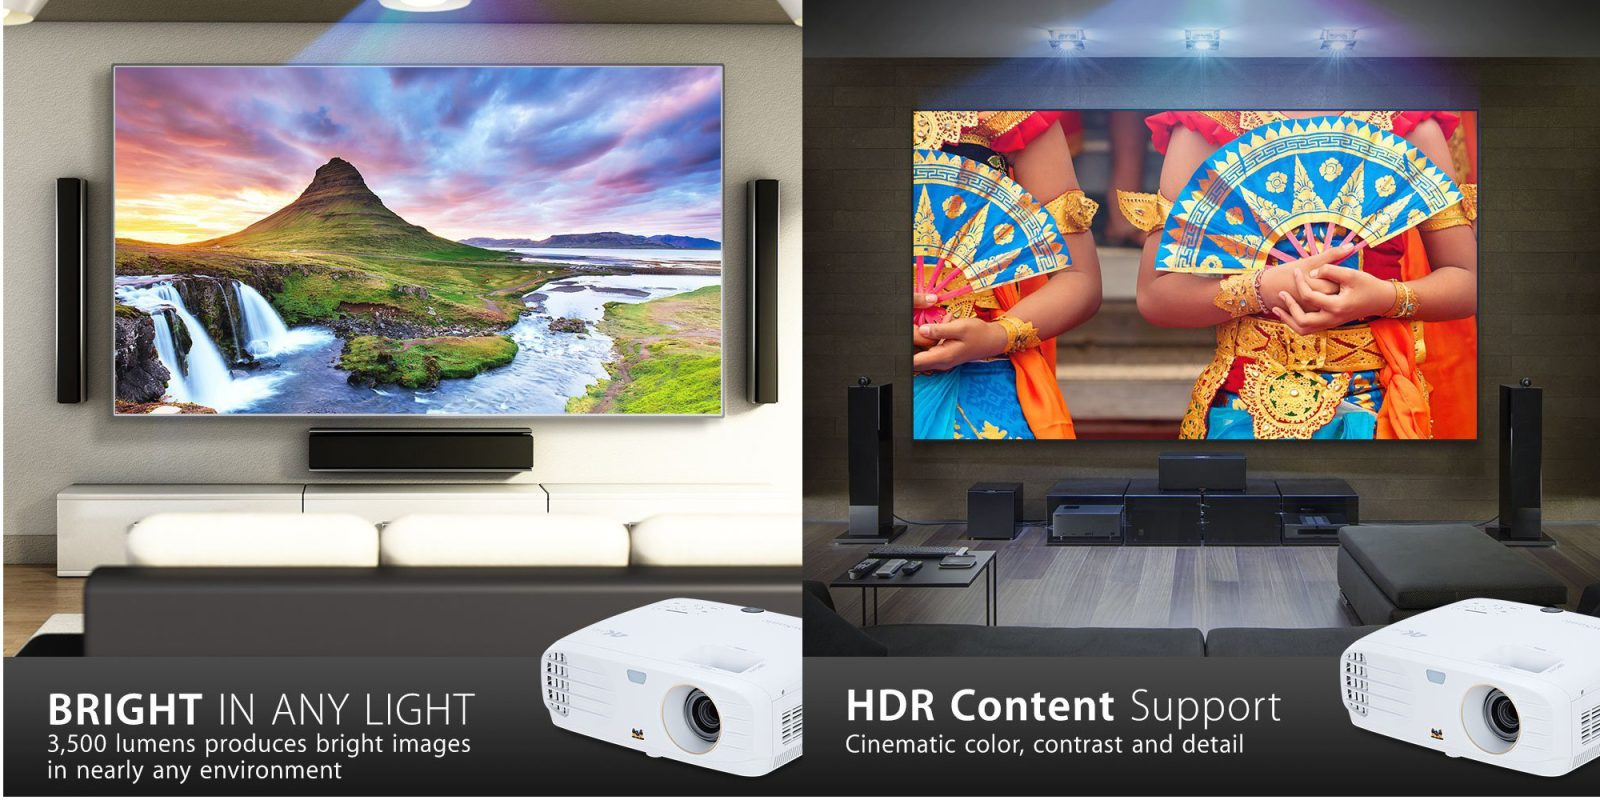 ViewSonic's 4K Home Theater Projector w/ HDMI now $300+ off for